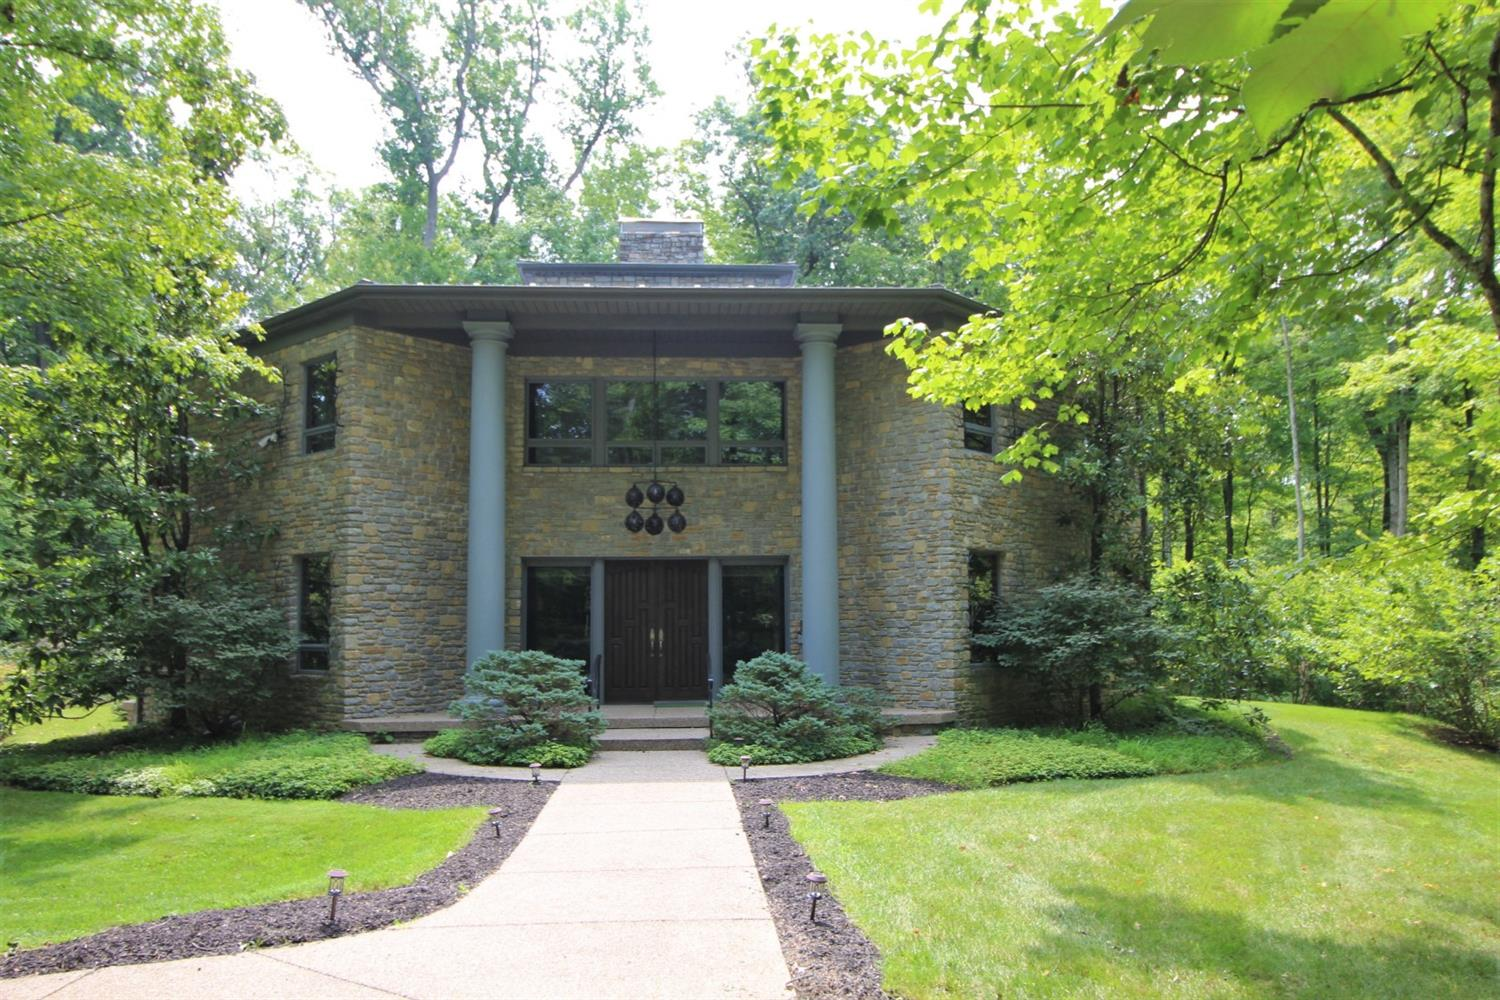 9550 Tall Trail, Indian Hill, Ohio 45242, 4 Bedrooms Bedrooms, 16 Rooms Rooms,5 BathroomsBathrooms,Single Family Residence,For Sale,Tall,1715855